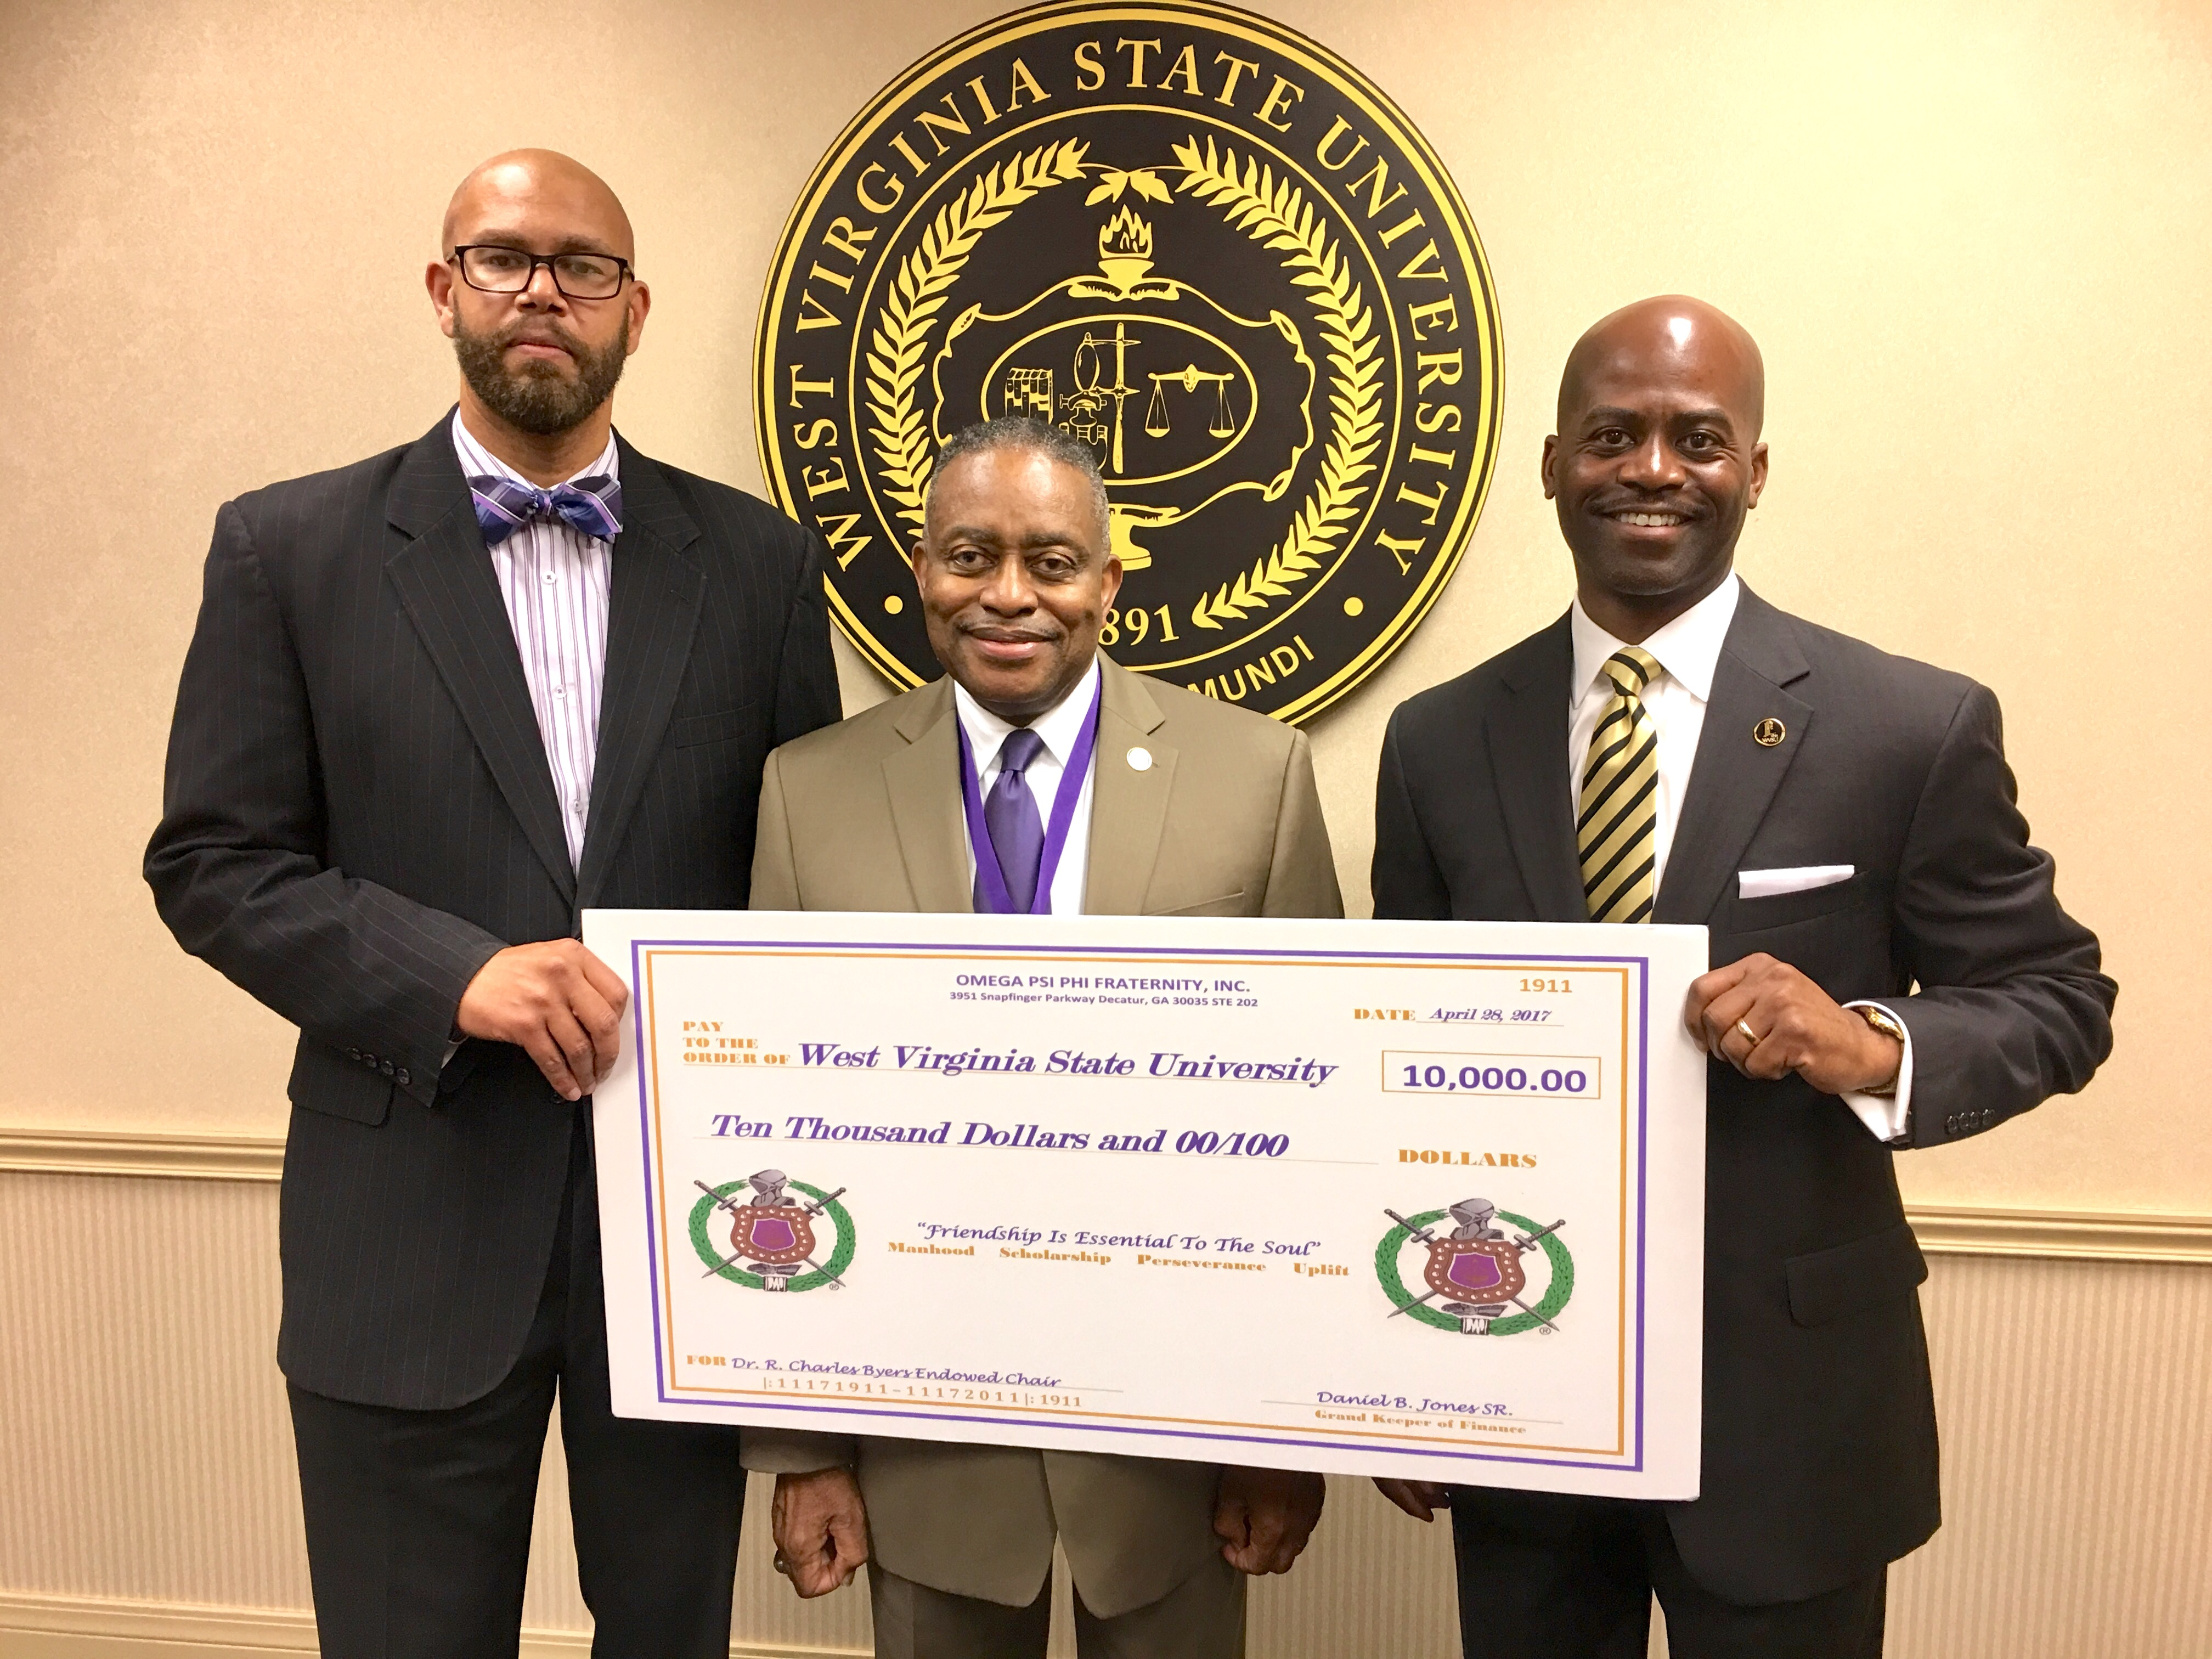 Omega Psi Phi Dr. Byers Endowed Chair Donation